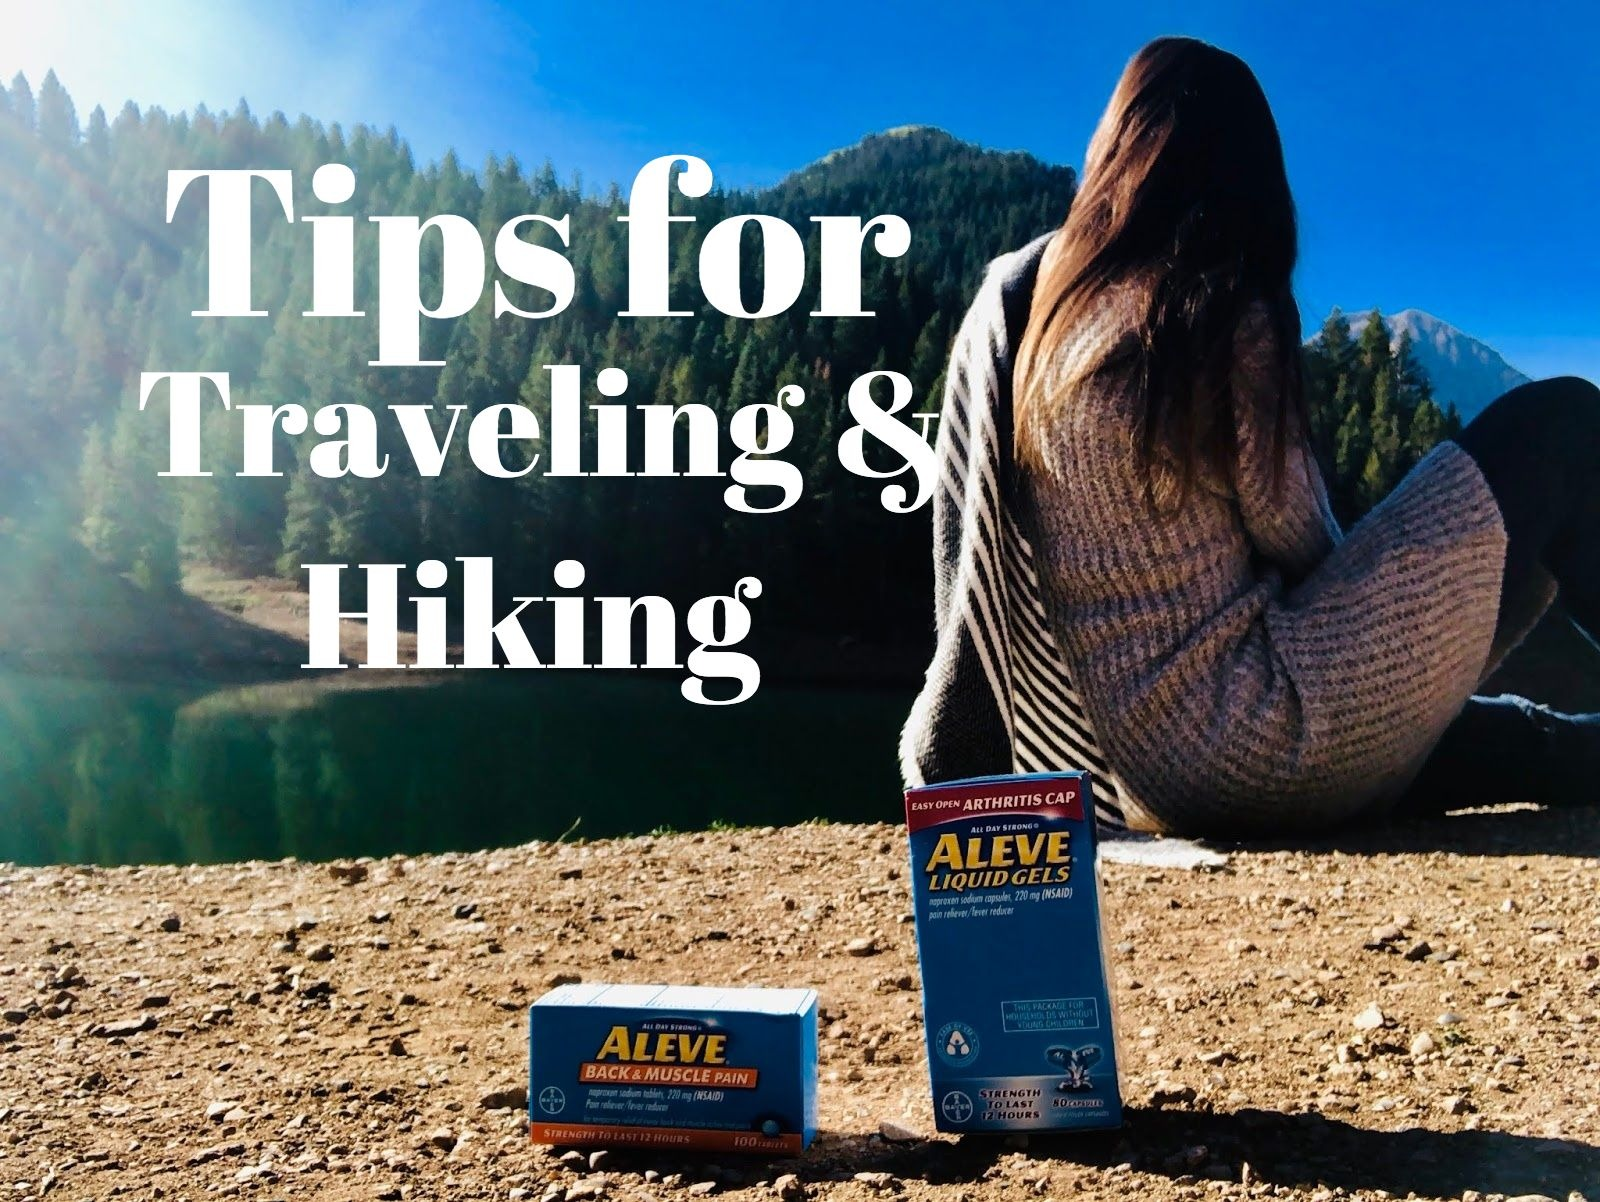 aleve gel tabs, aleve muscle and back relief, aleve tablets, canada, hiking, hiking in canada, lake, traveling, vancouver,